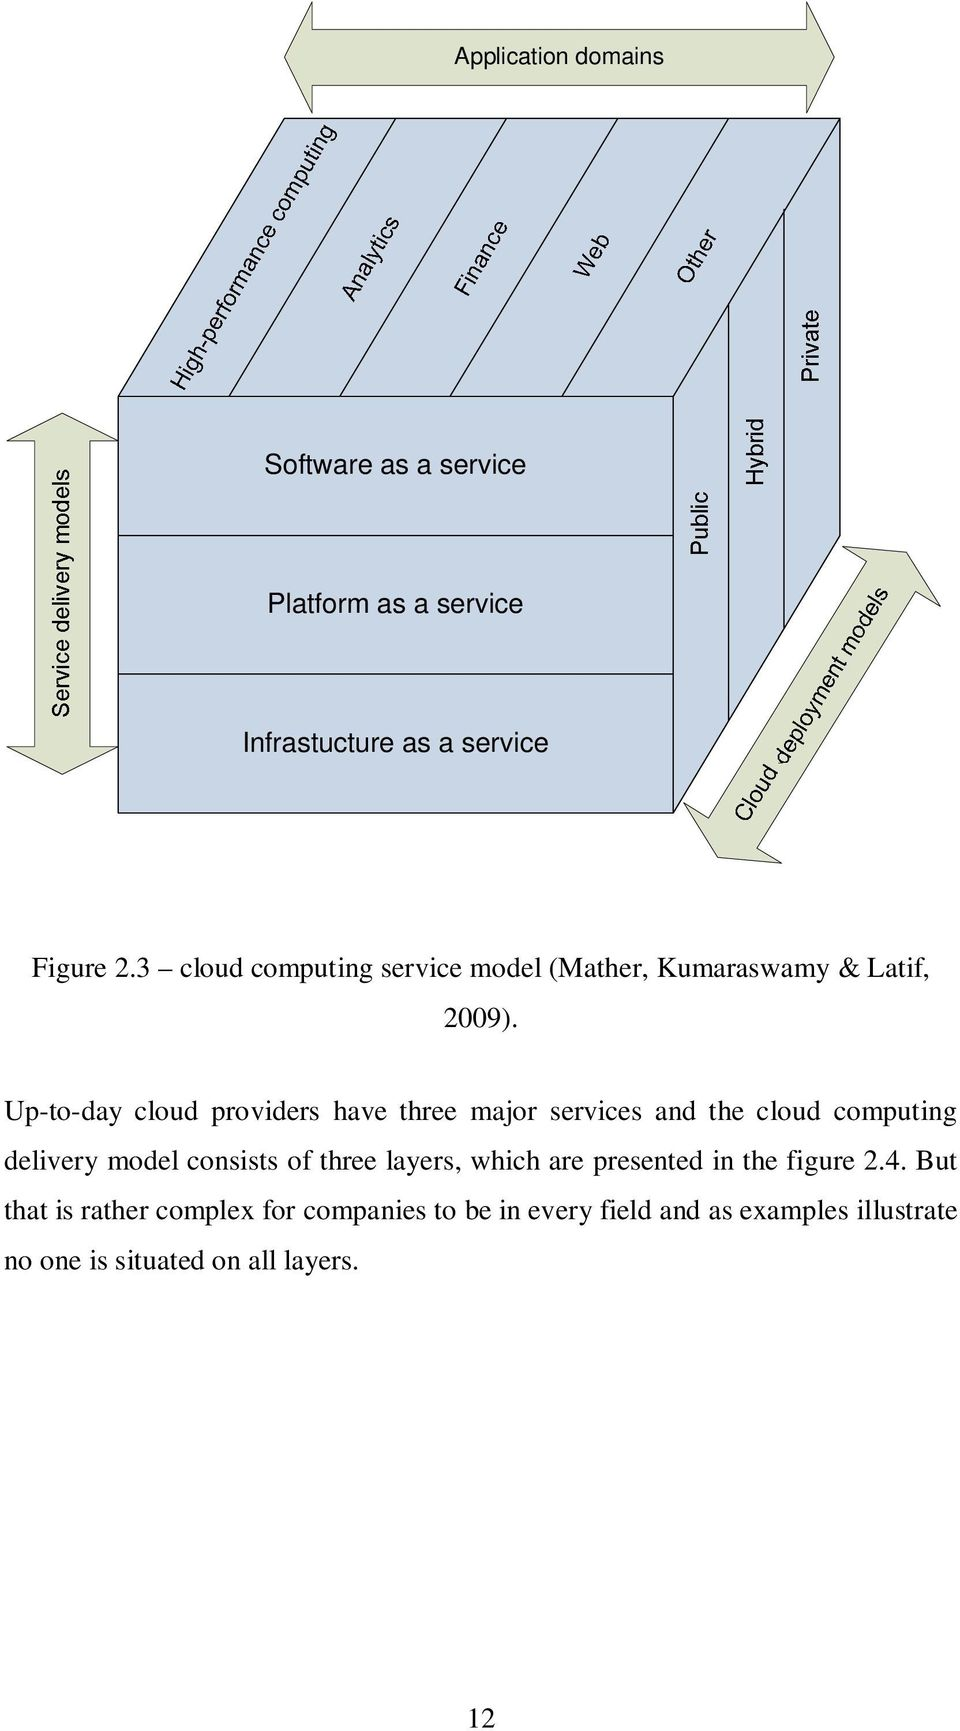 Up-to-day cloud providers have three major services and the cloud computing delivery model consists of three